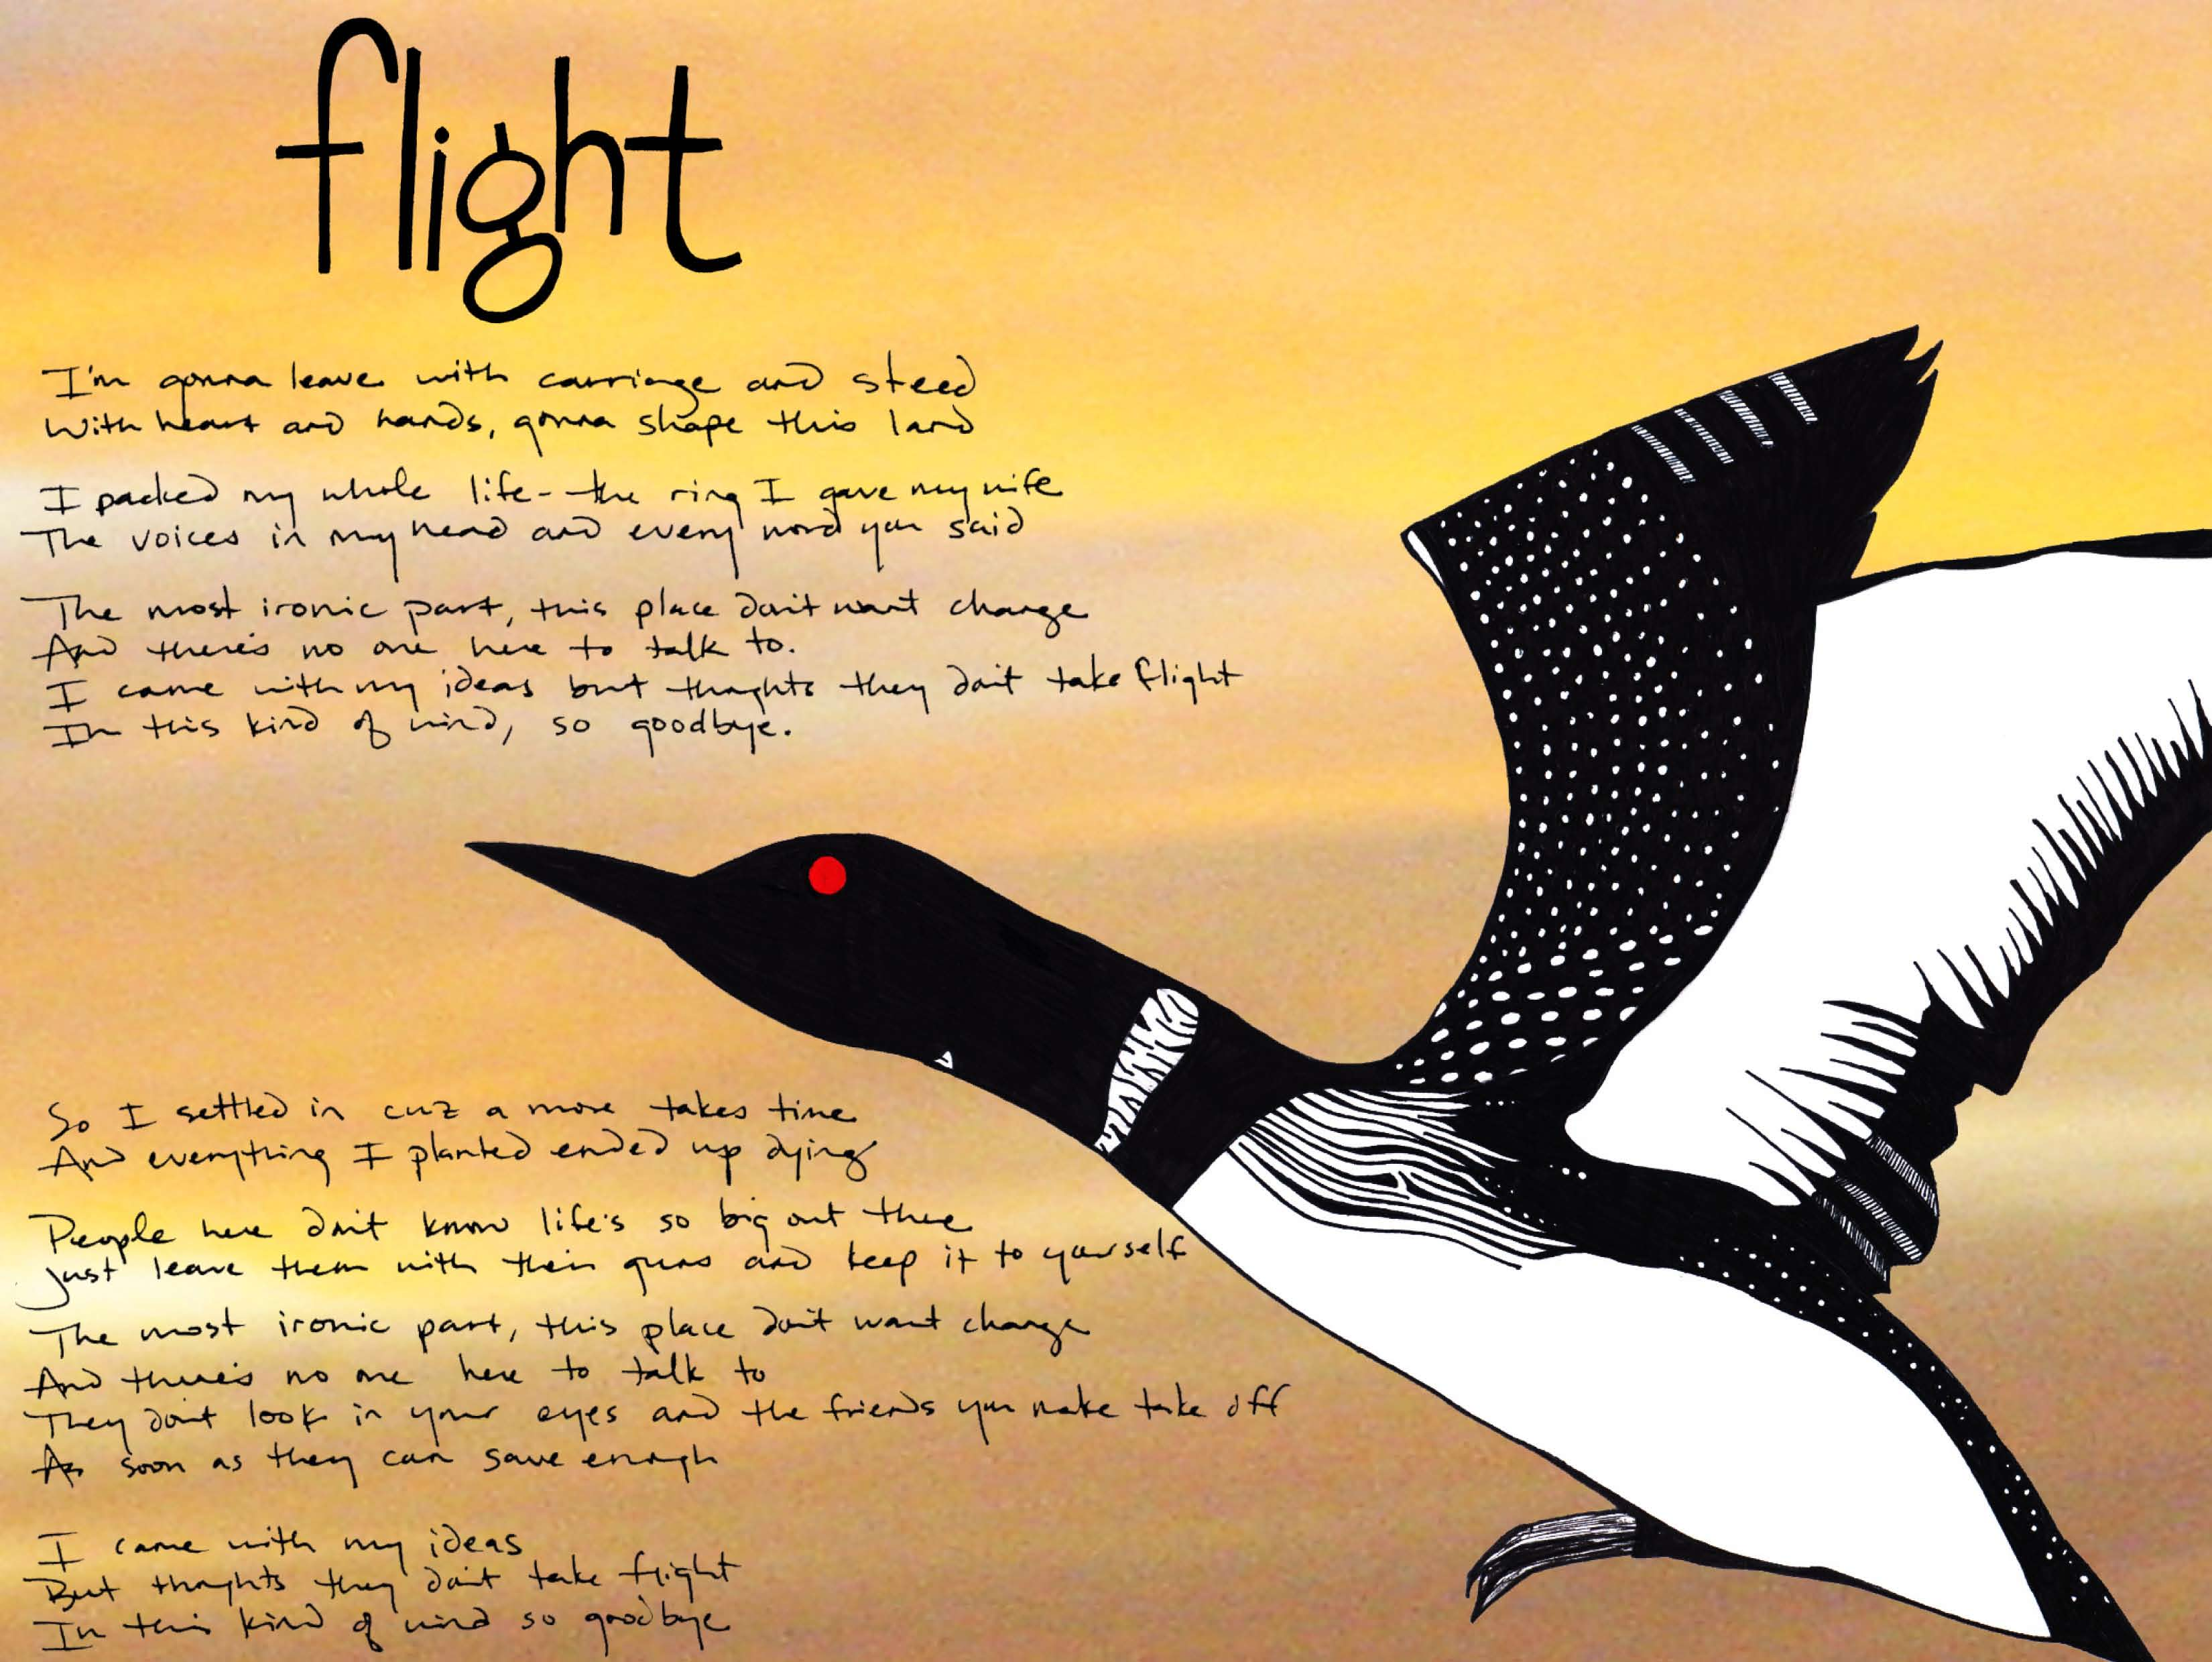 The Common Loon - Flight (Music Album Art), by Billy Reiter & Tara Marolf